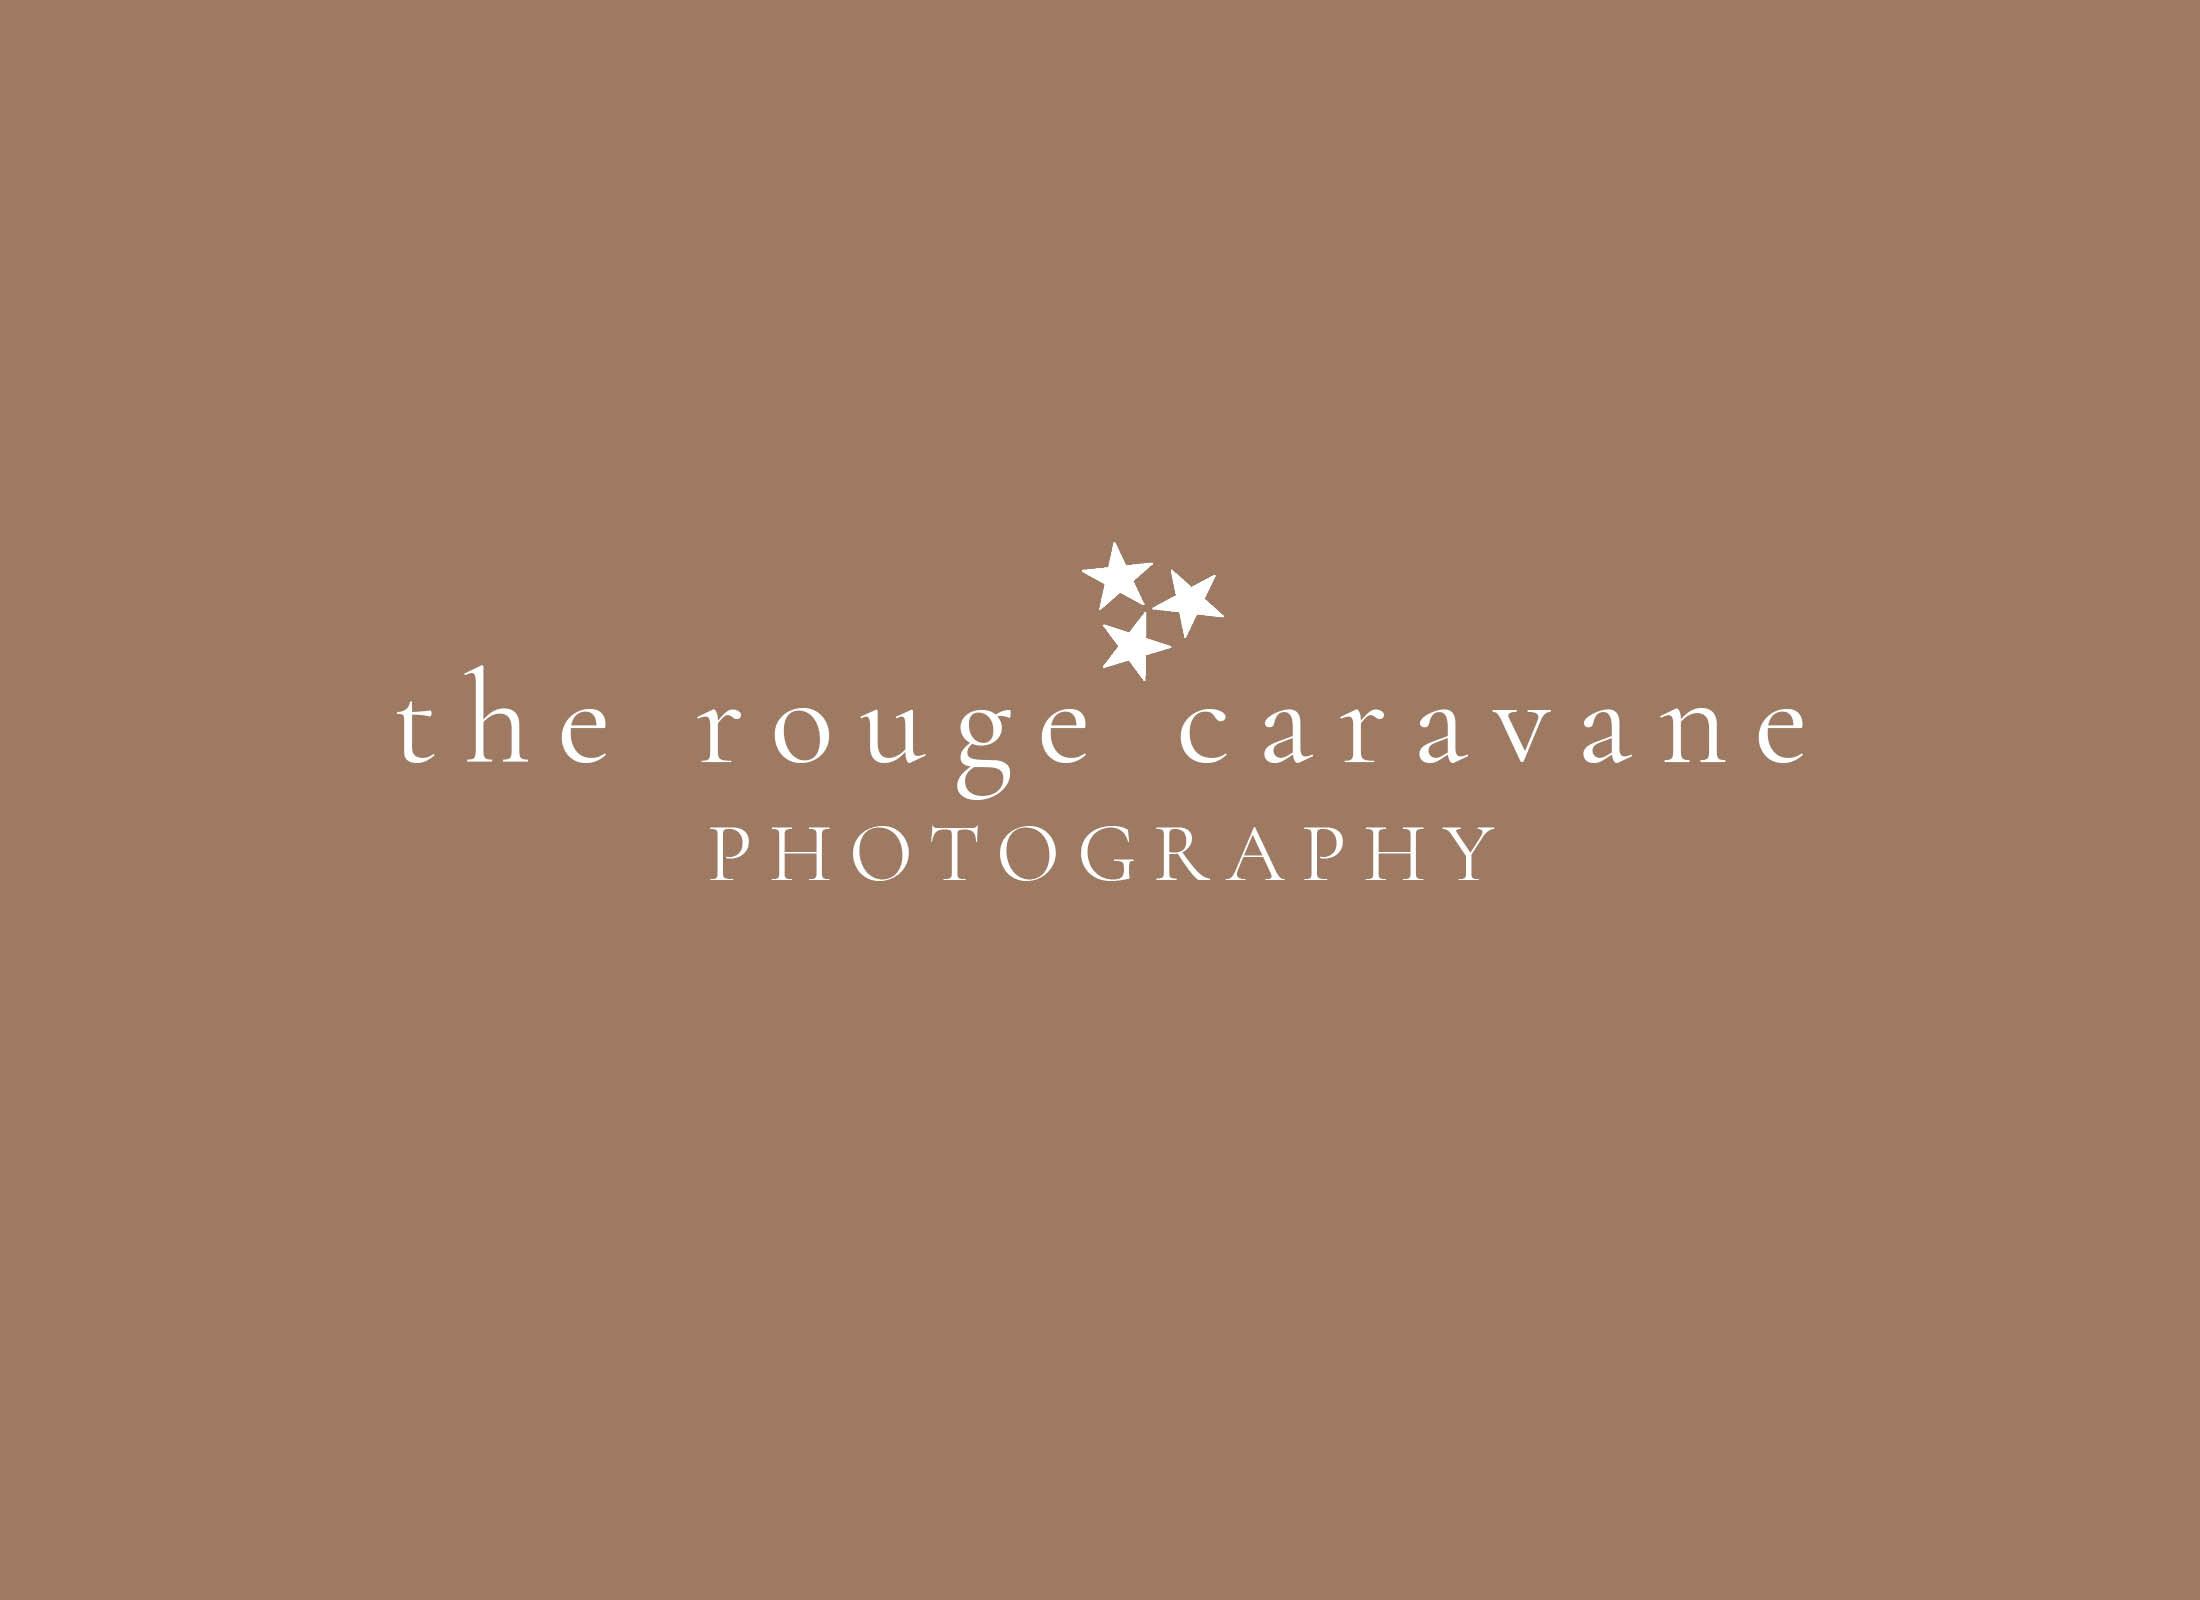 The Rouge Caravane Photography